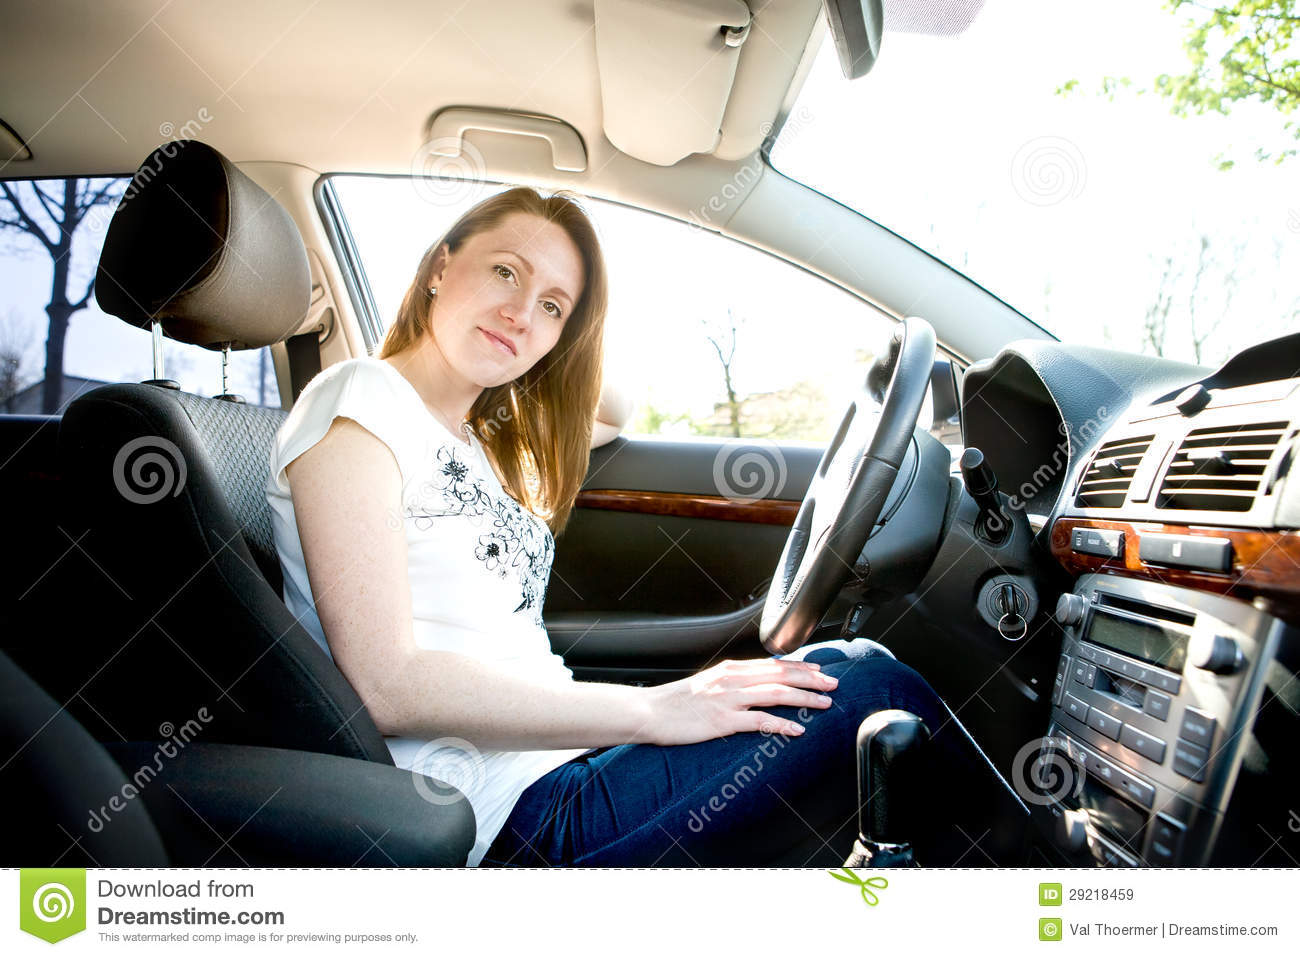 Drive Time Cars >> Driving Girl Royalty Free Stock Images - Image: 29218459